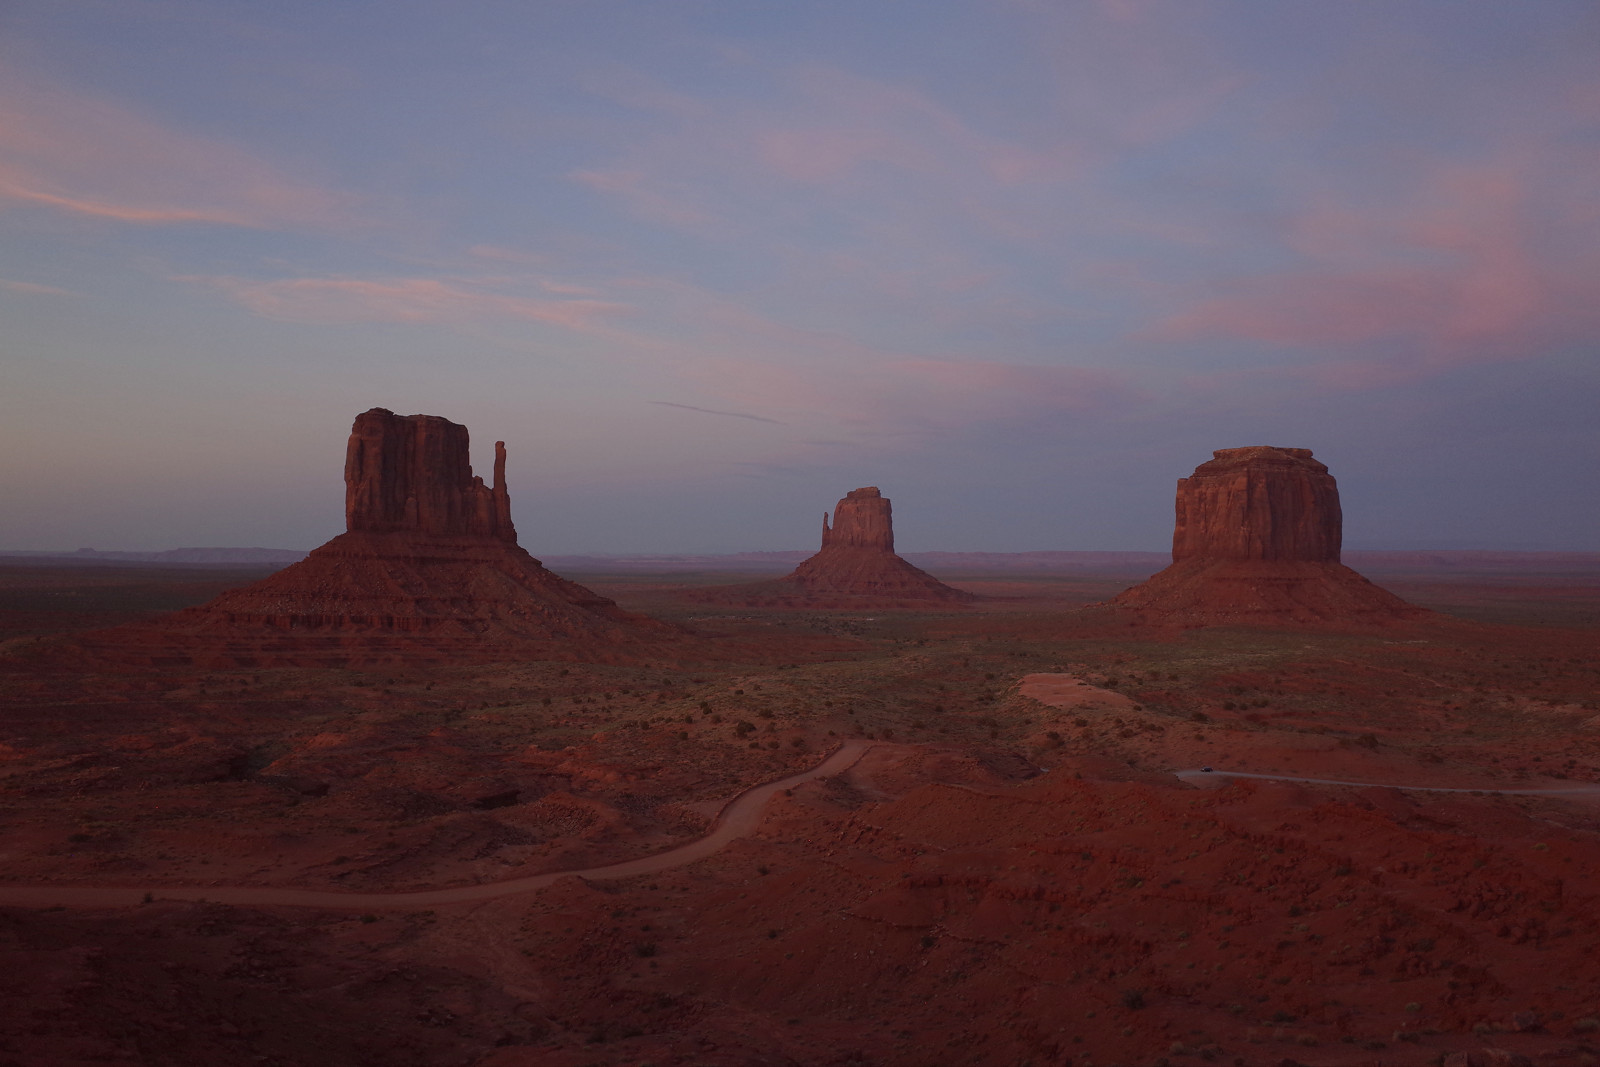 The Mittens of Monument Valley at dusk